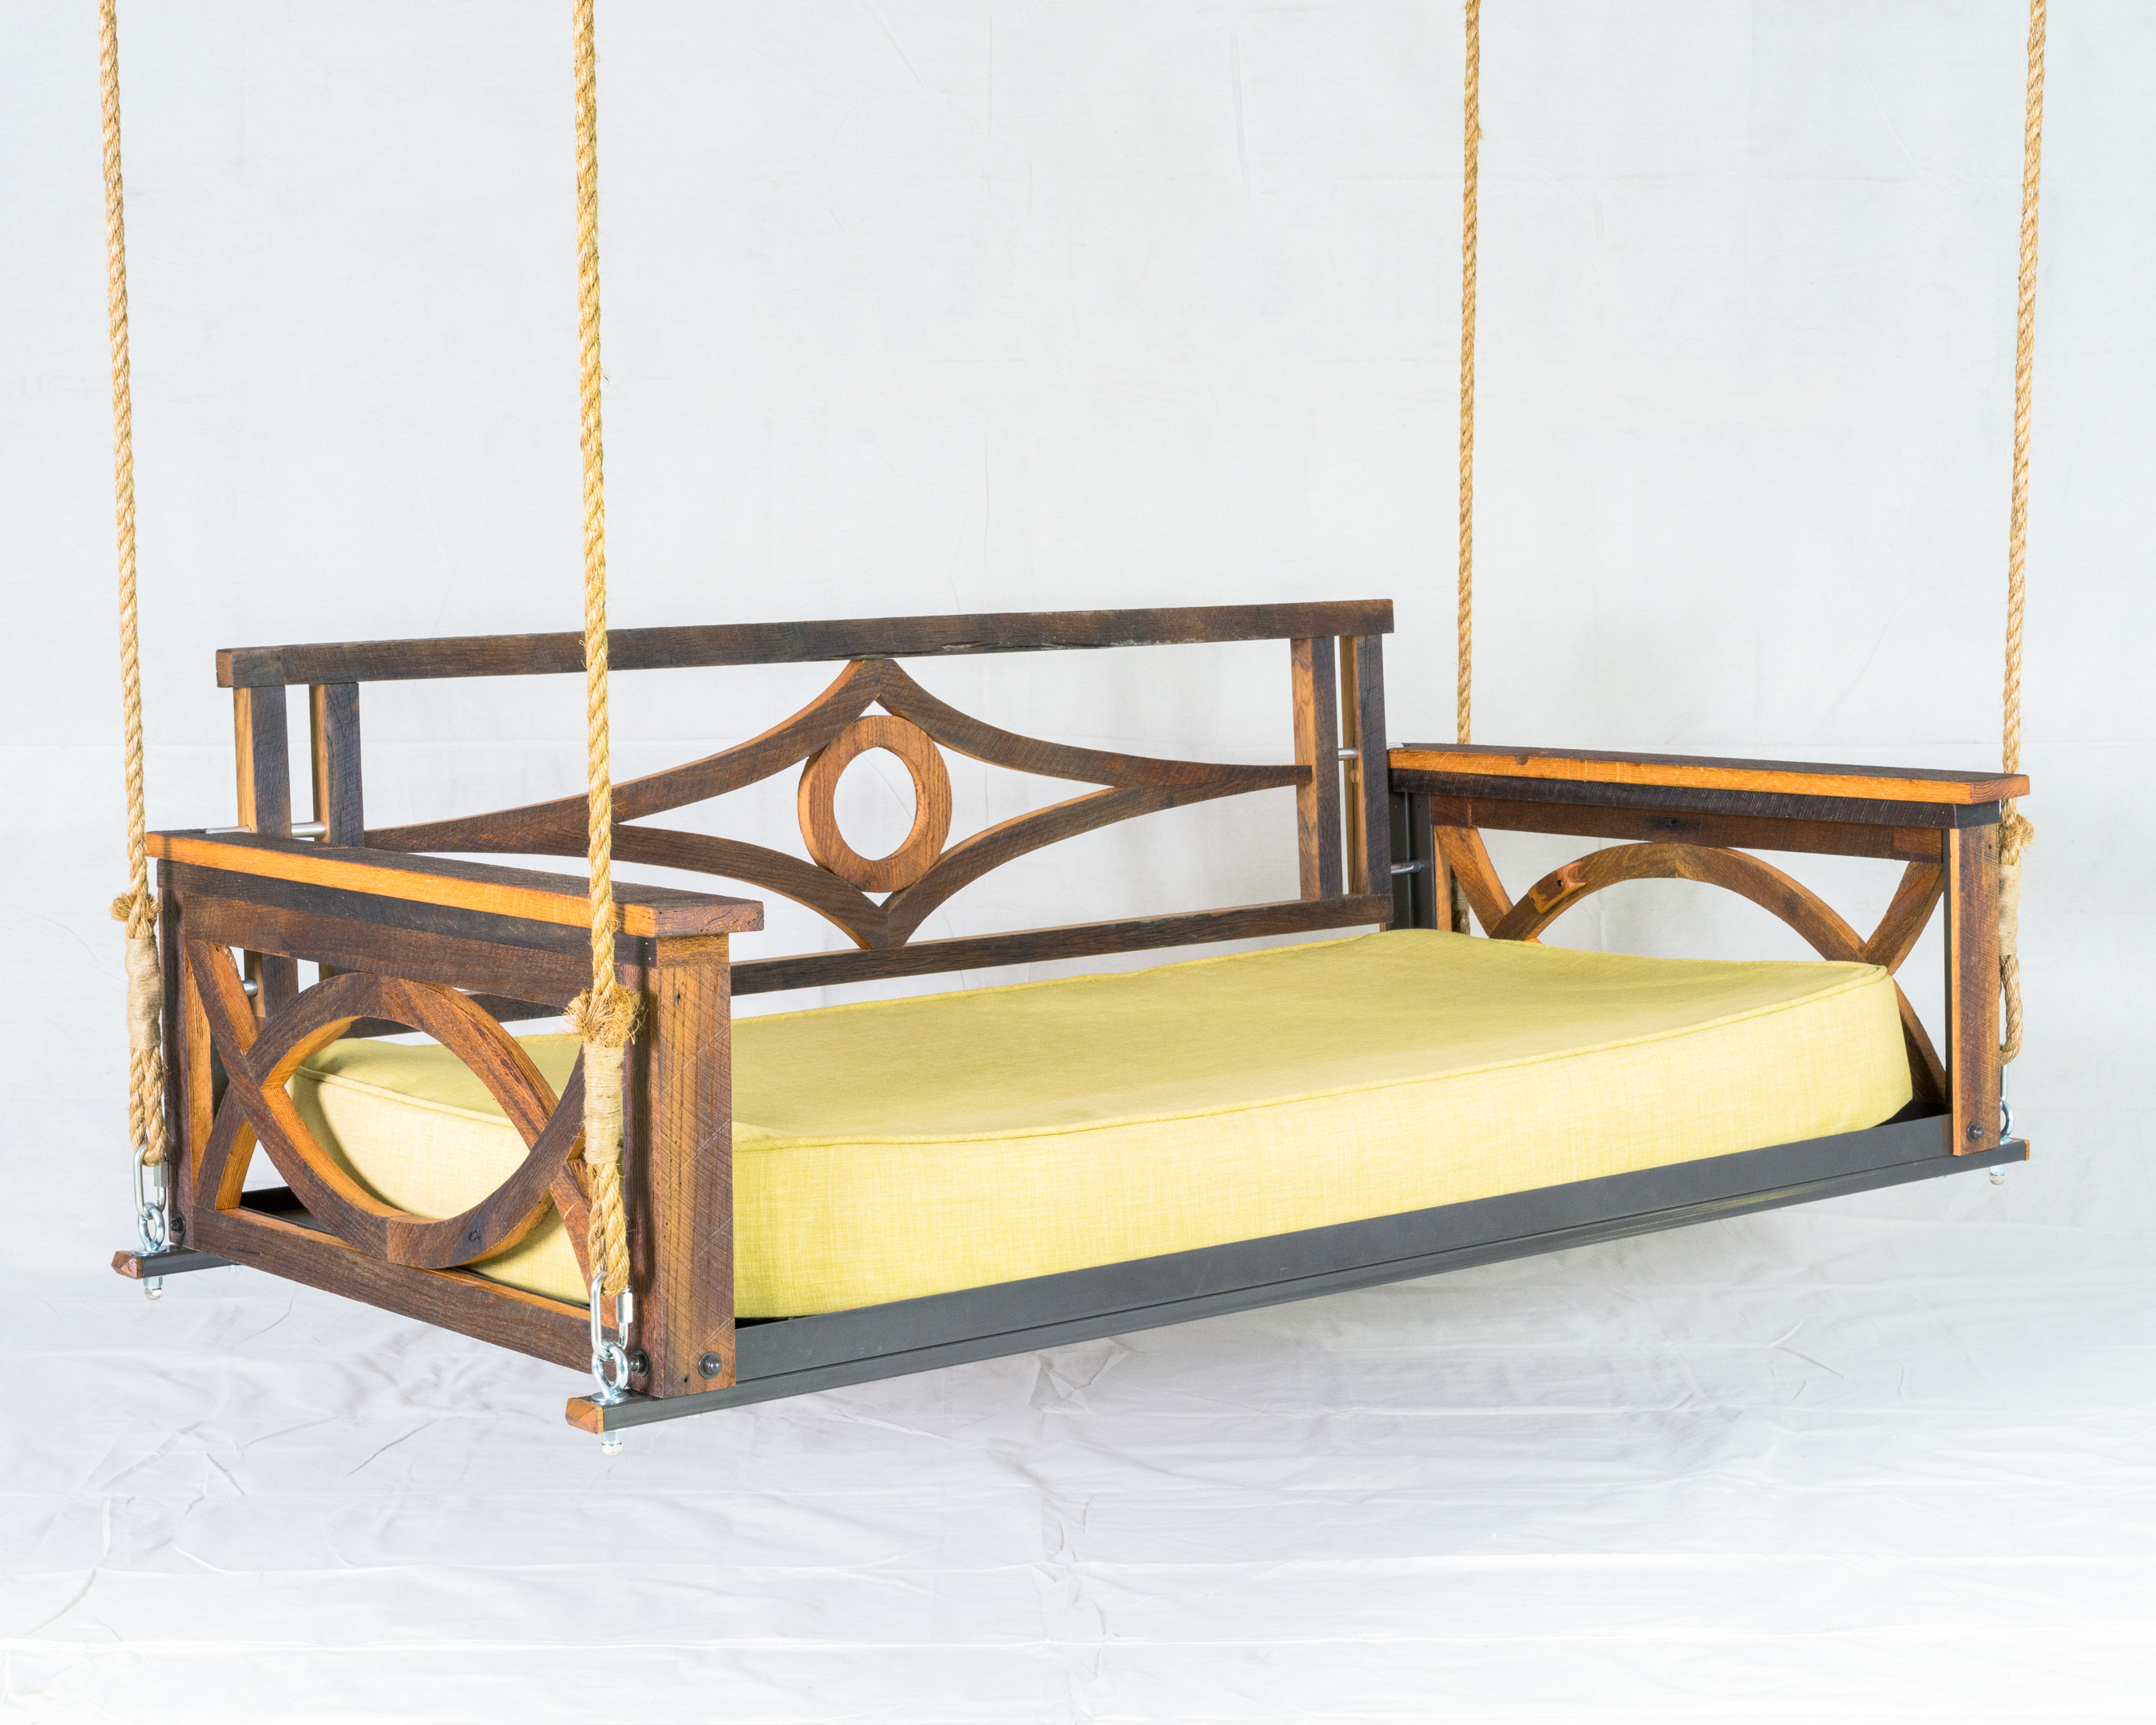 Barn Wood Bed Swing The Porch Company